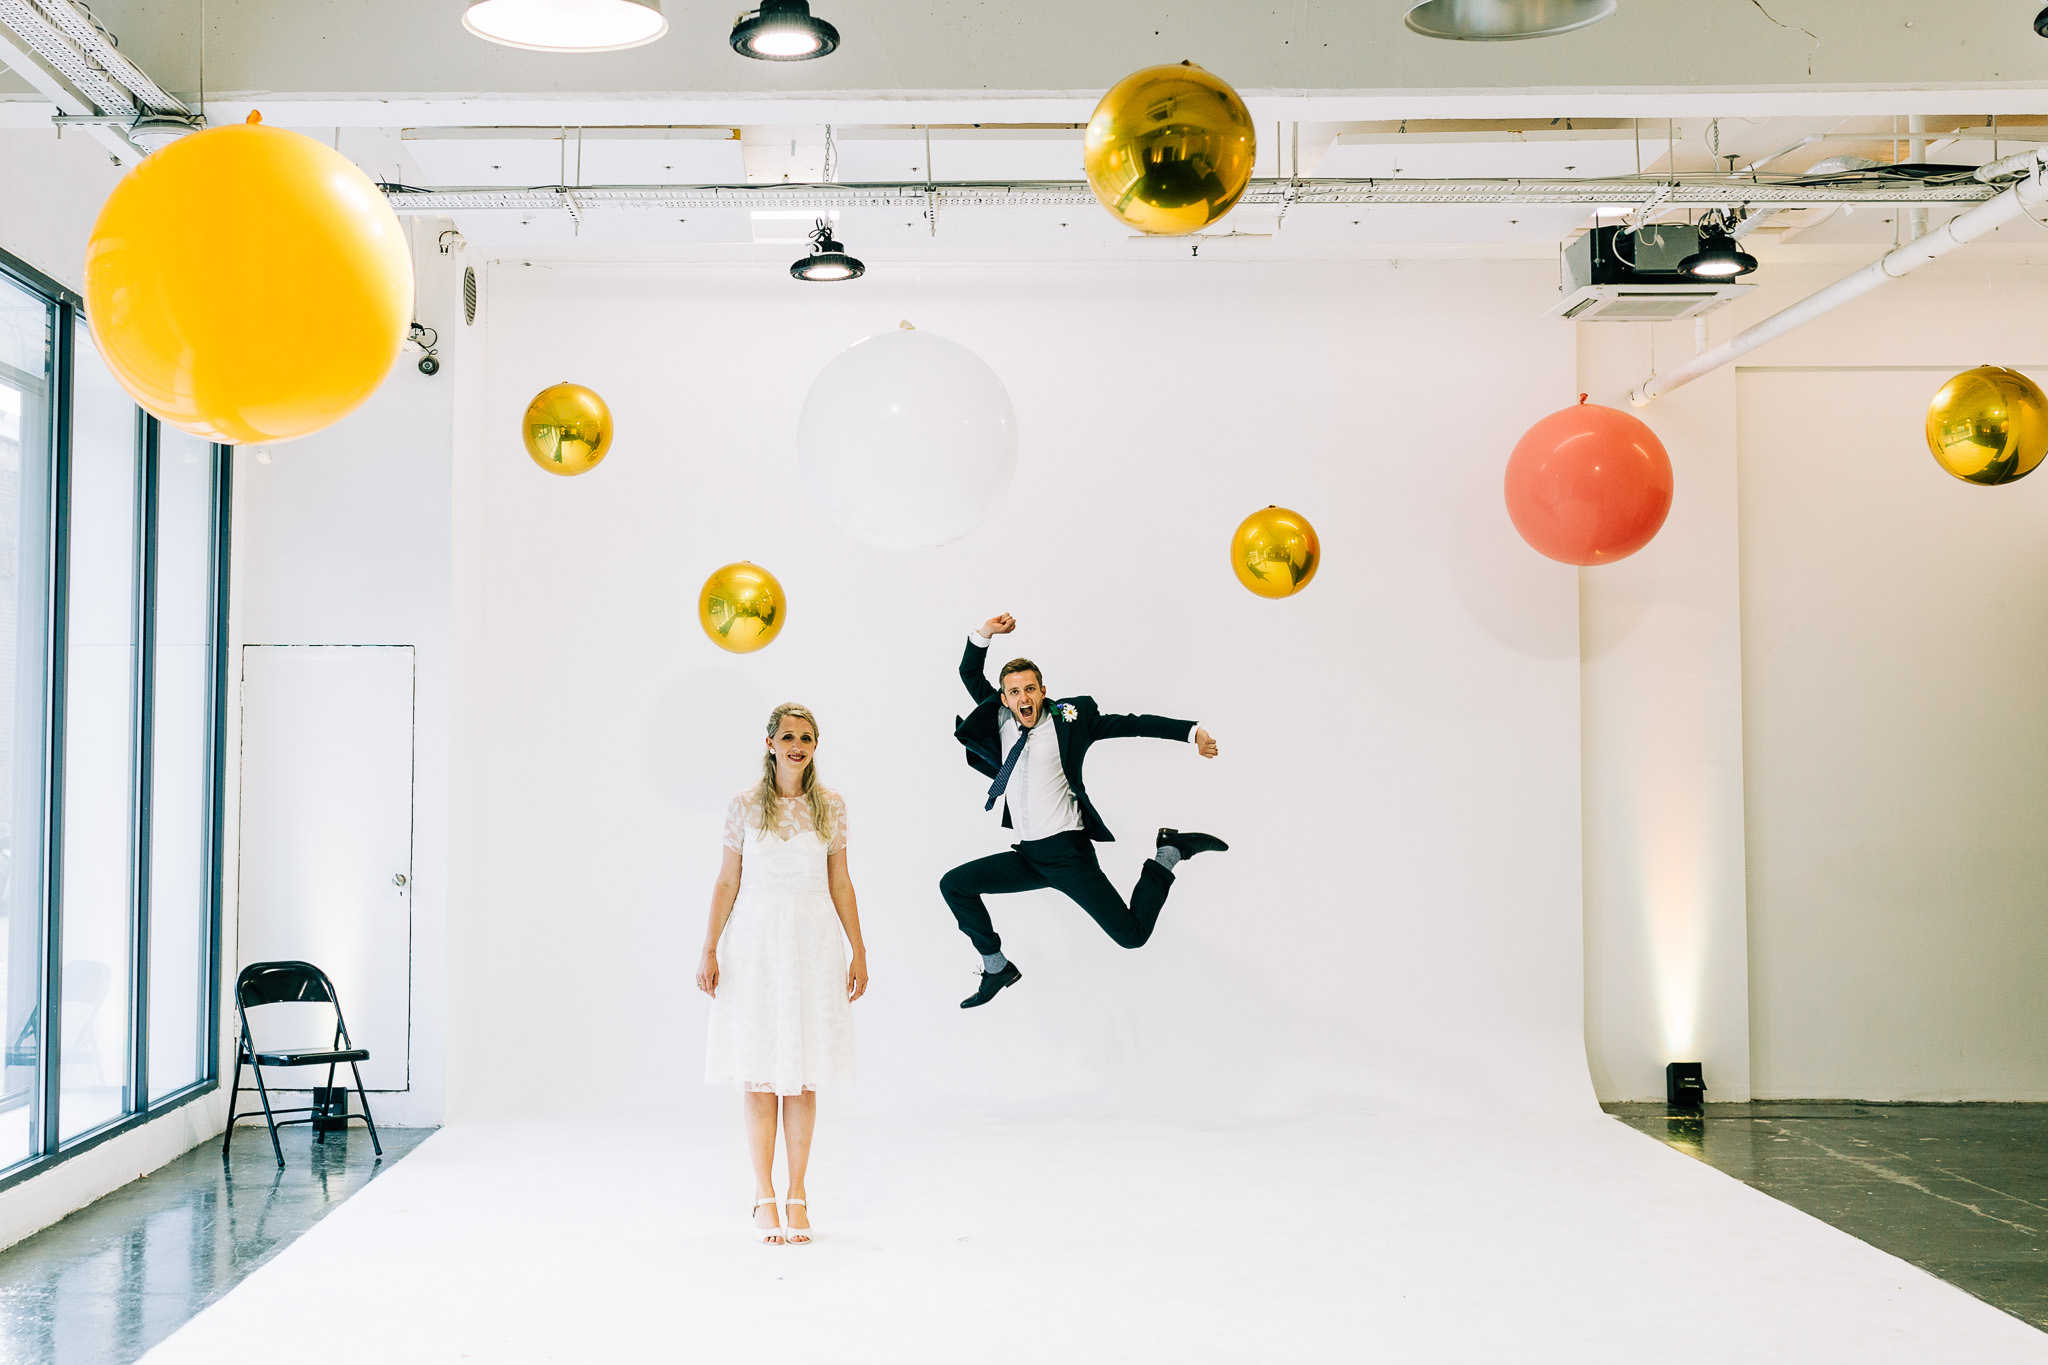 fun colorful wedding at studio spaces shadwell